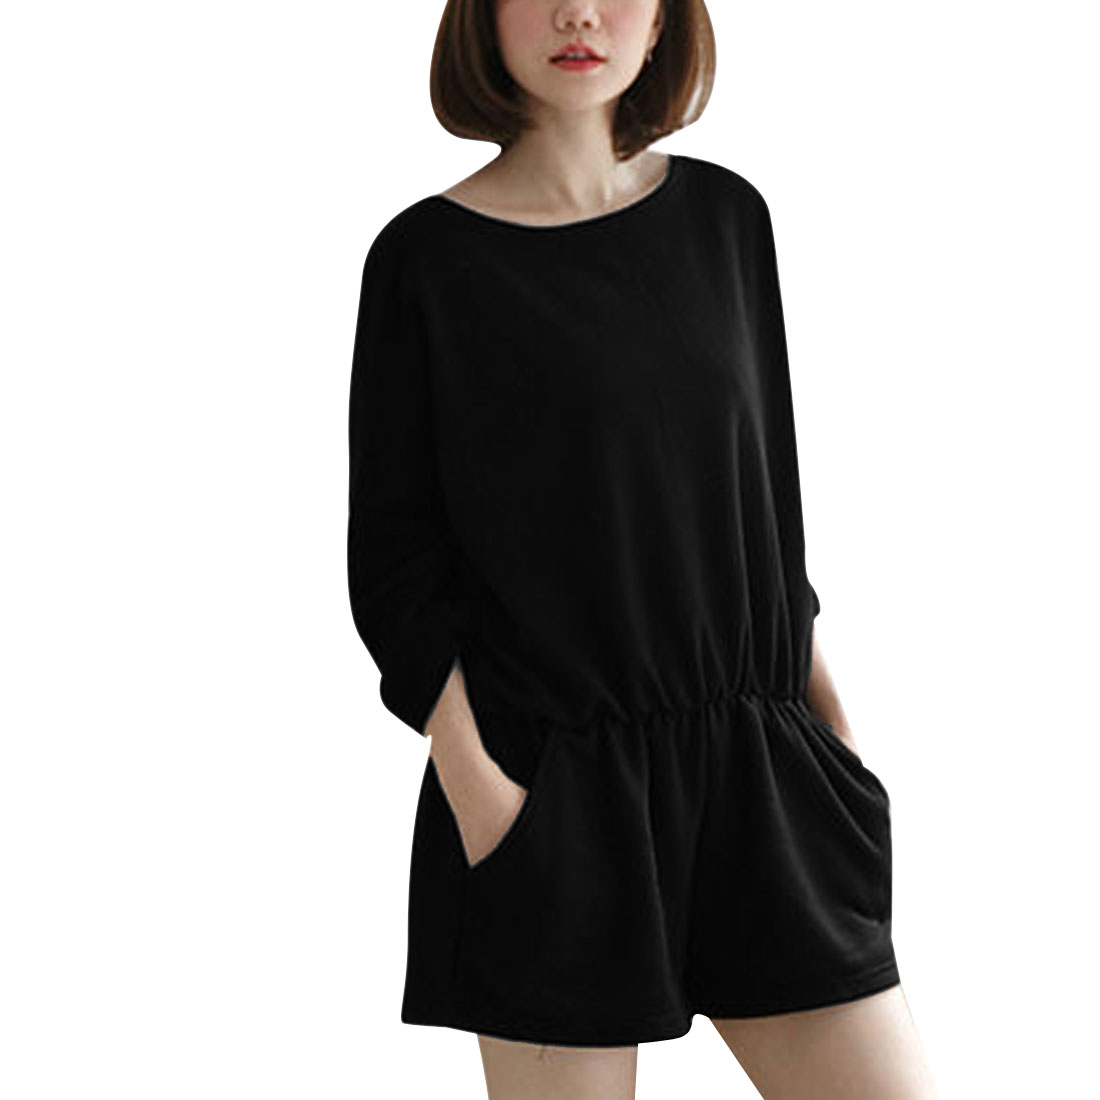 Ladies' Round Neck Zip Back Bat Sleeve Elastic-waist Black Short Jumpsuits S